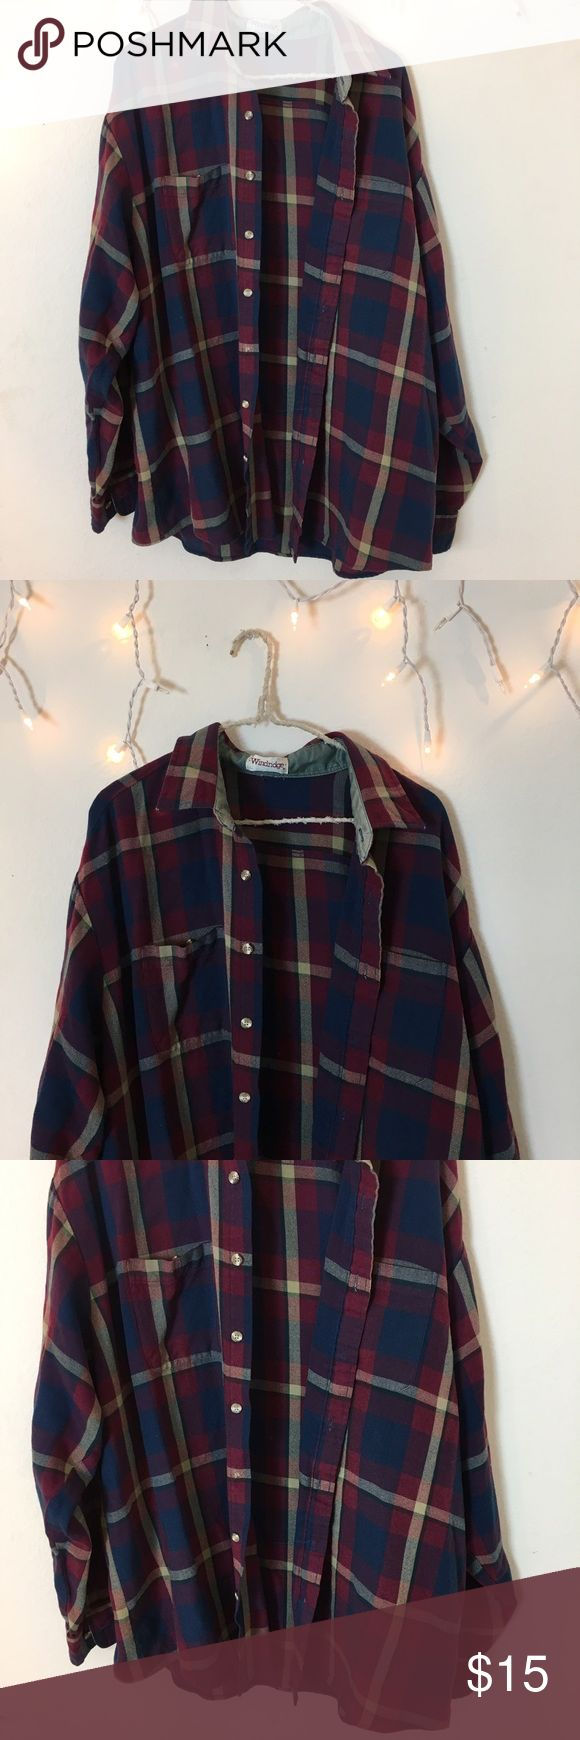 Vintage Red Blue White Flannel Perfect condition multi color Flannel. Long oversized fit and ultra comfy. Bought from Brandy Melville vintage section, tag brand is windridge. Best for women's medium or large for an oversized fit. Brandy Melville Tops Tees - Long Sleeve